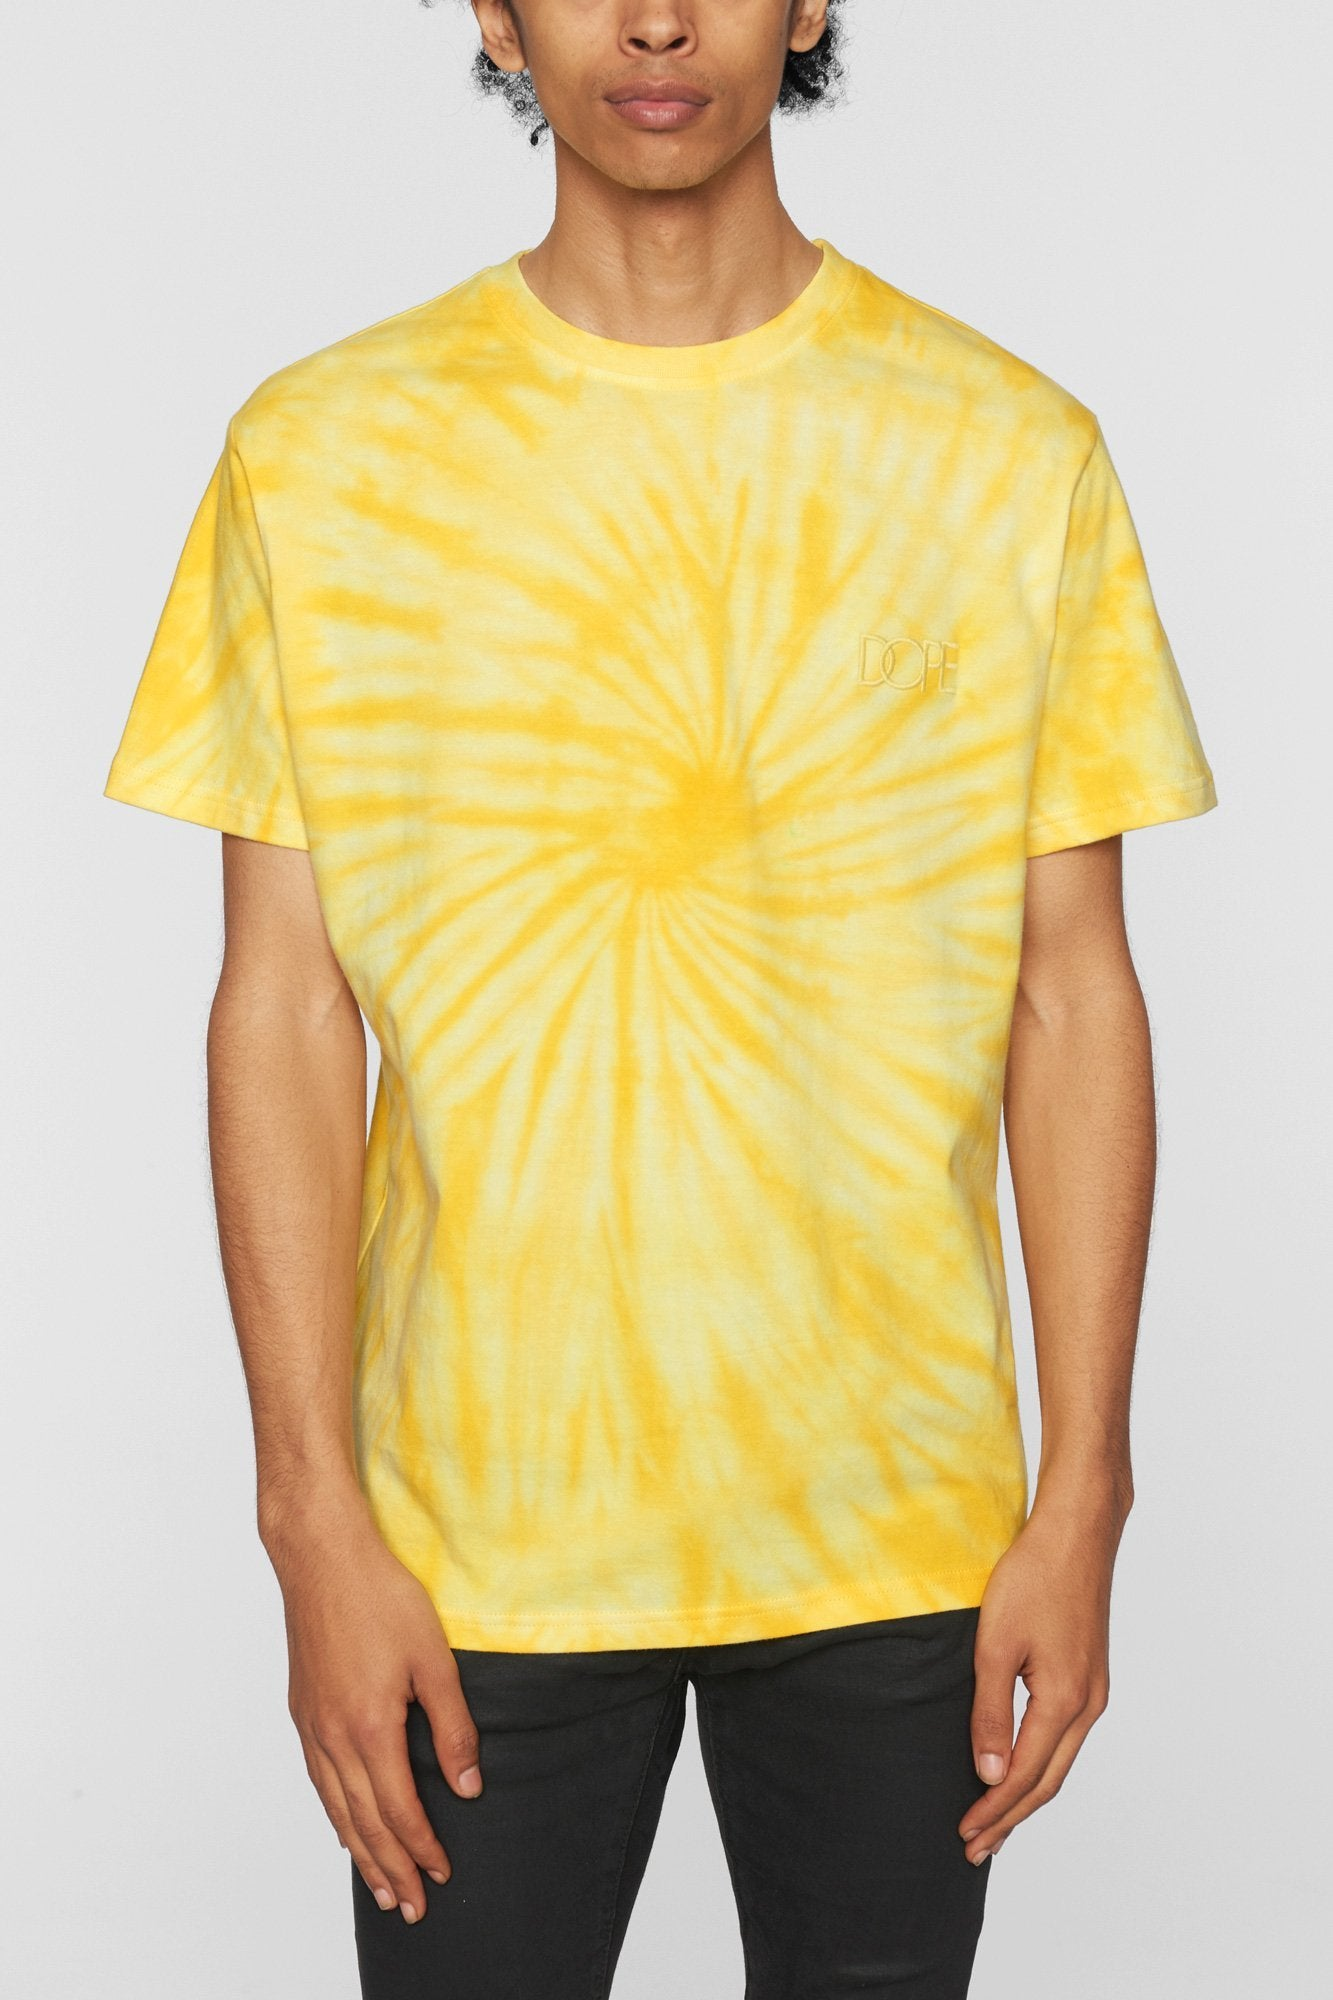 DOPE Savers Tie Dye Tee #Yellow